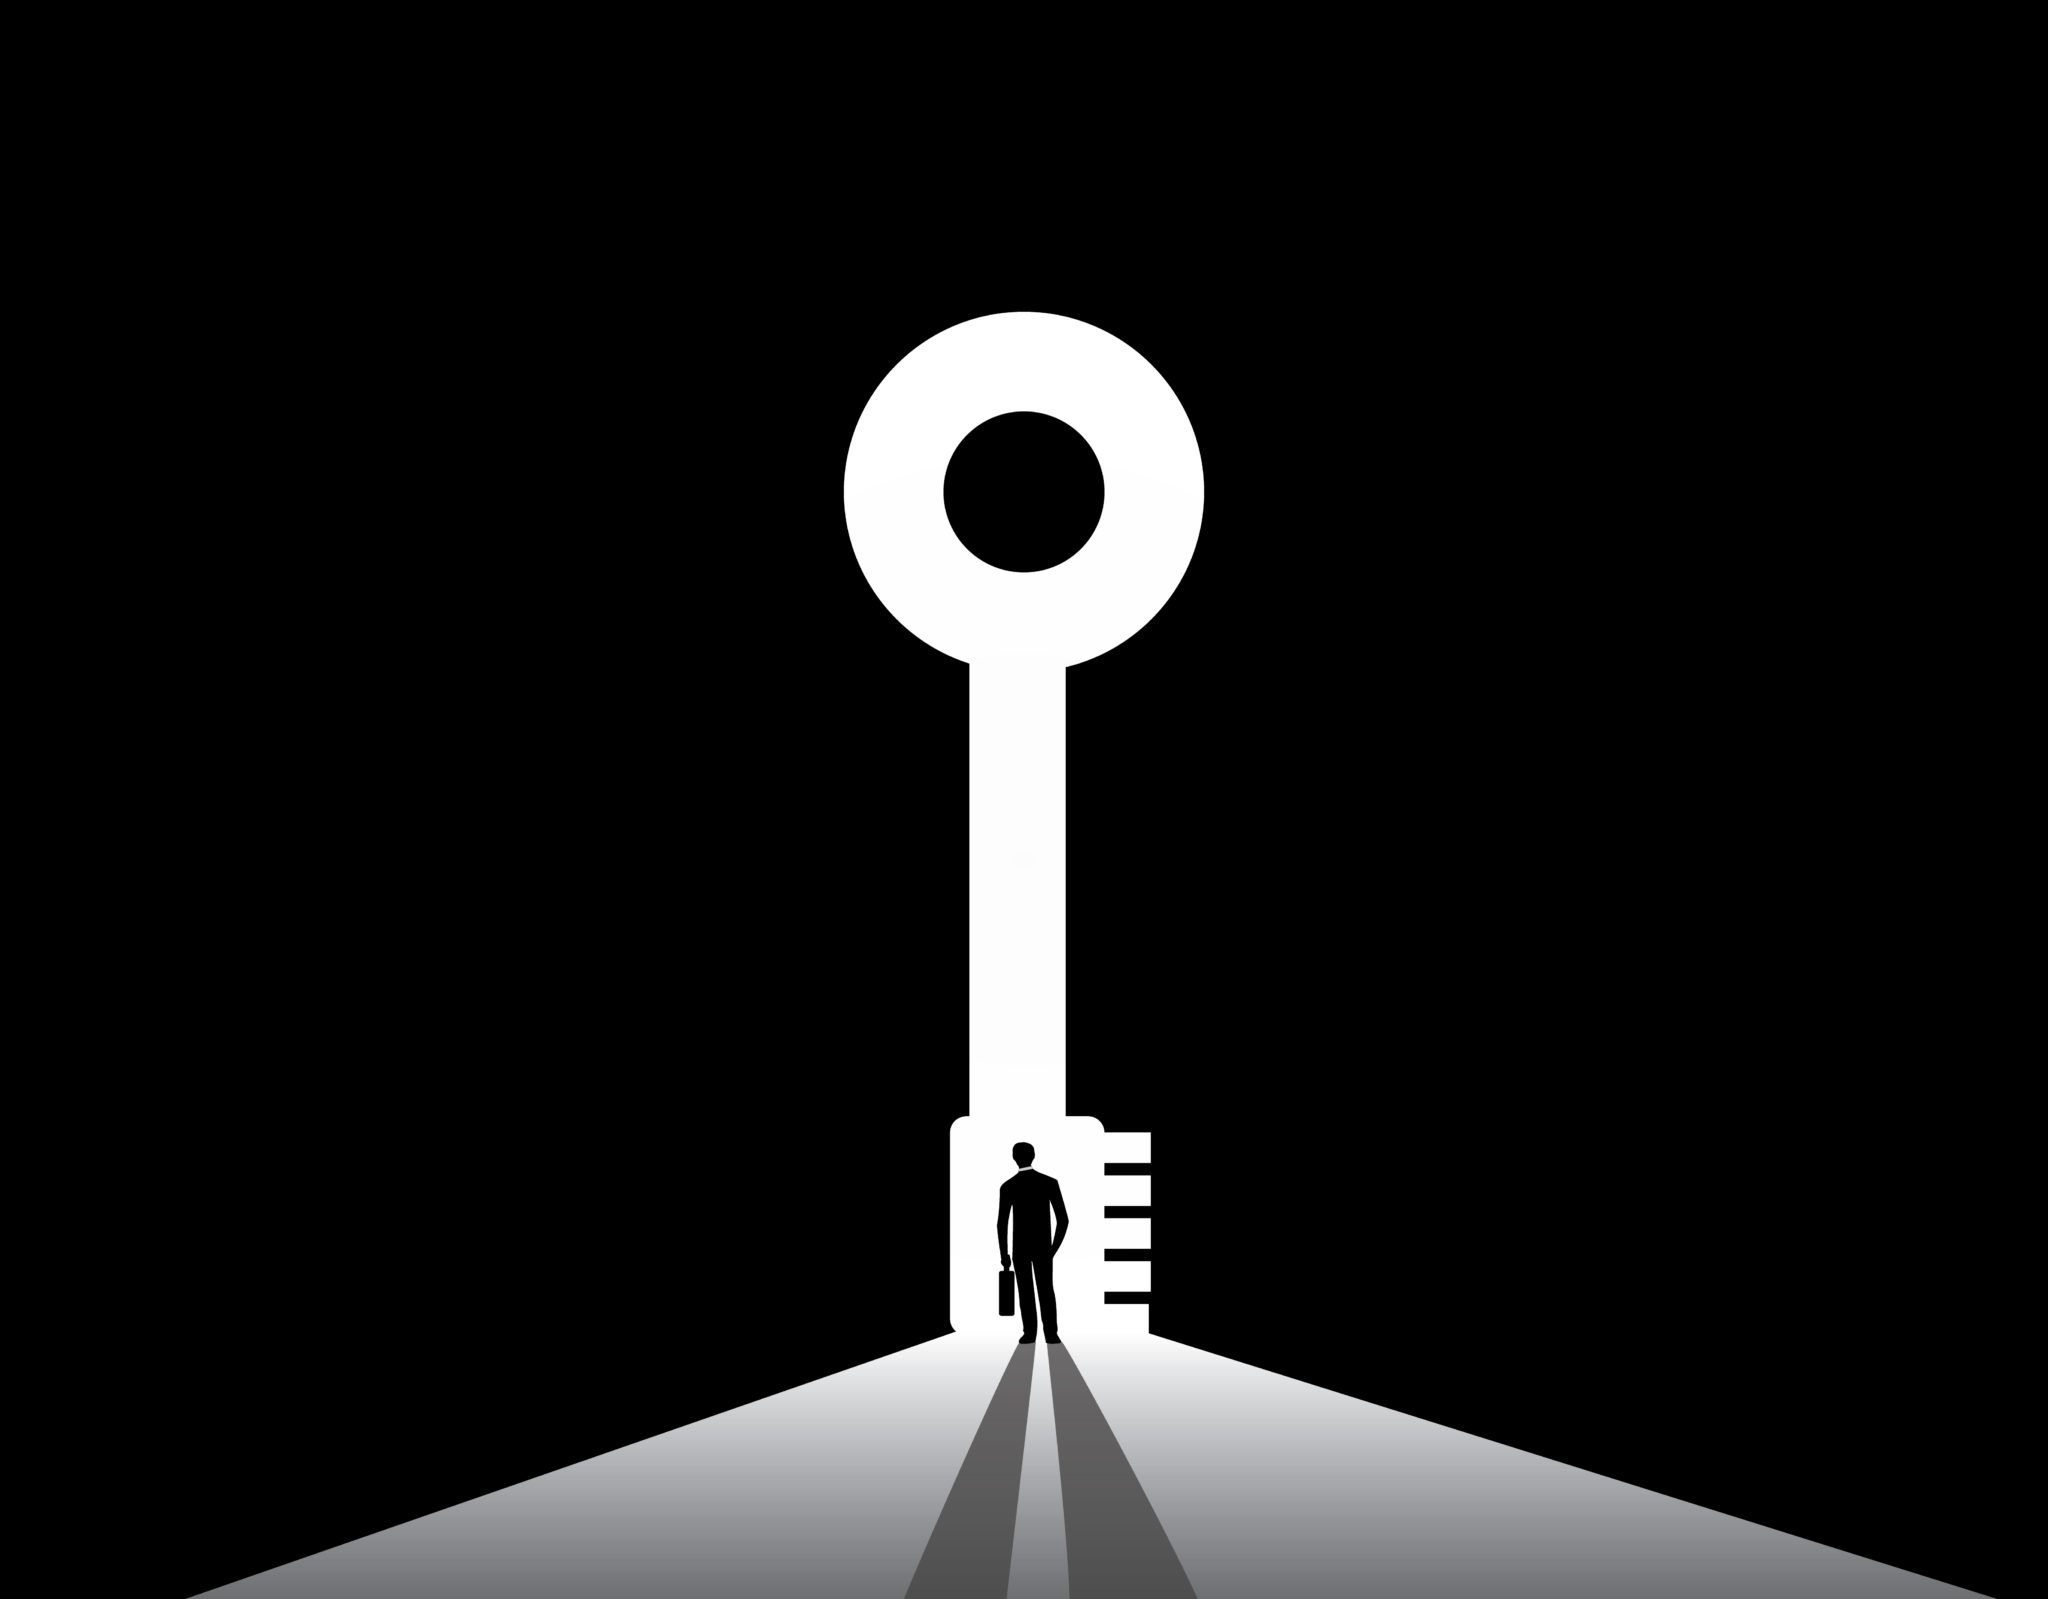 A silhouetted man stands beneath a large key